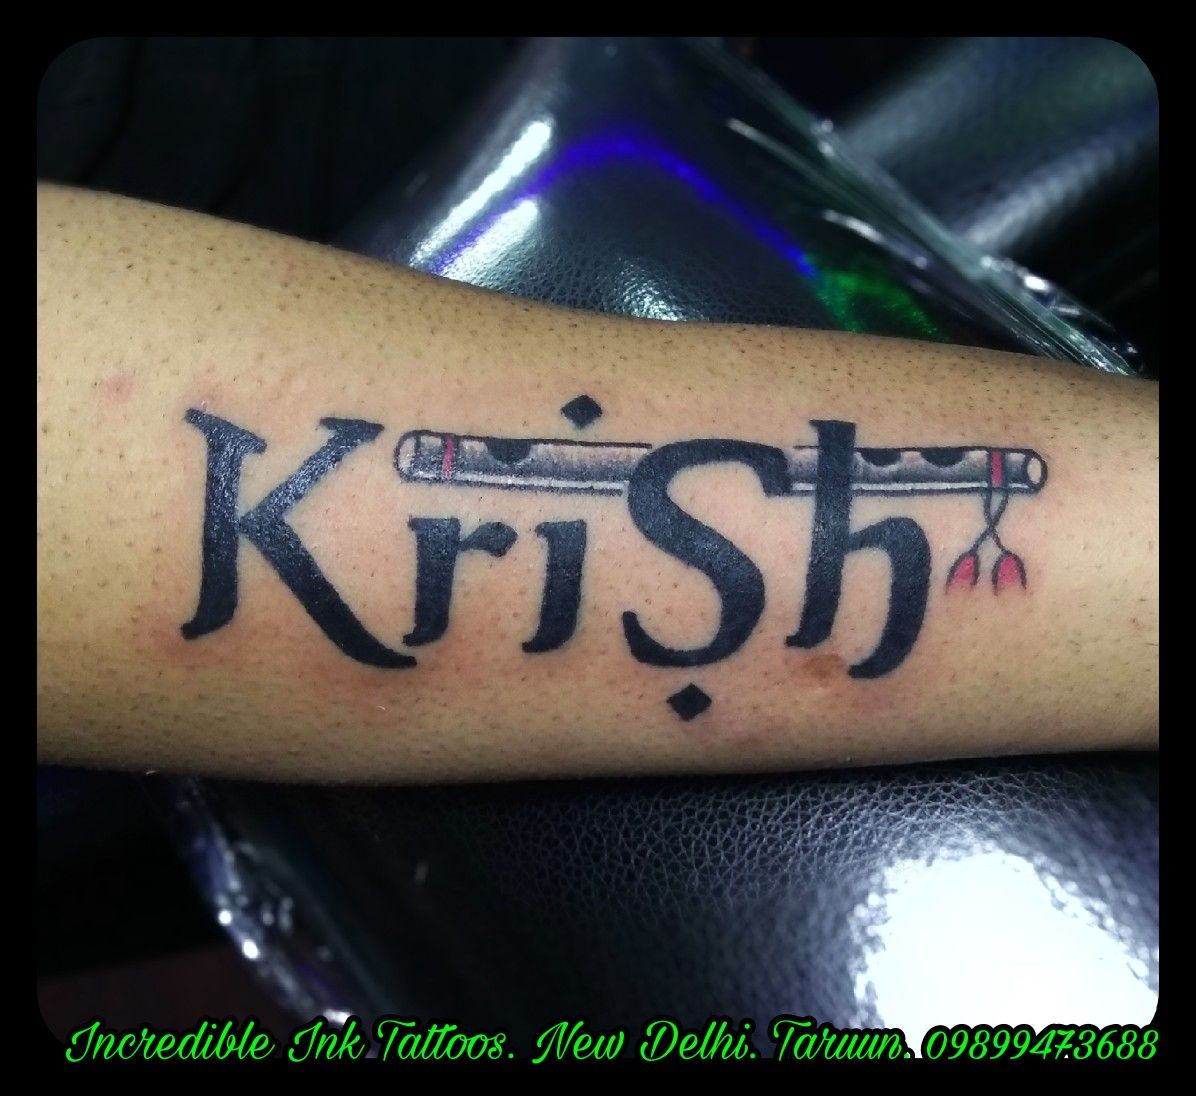 Krish Tattoo Krish Tattoo Call 09899473688 Tattoos Ink Tattoo Tattoo Quotes